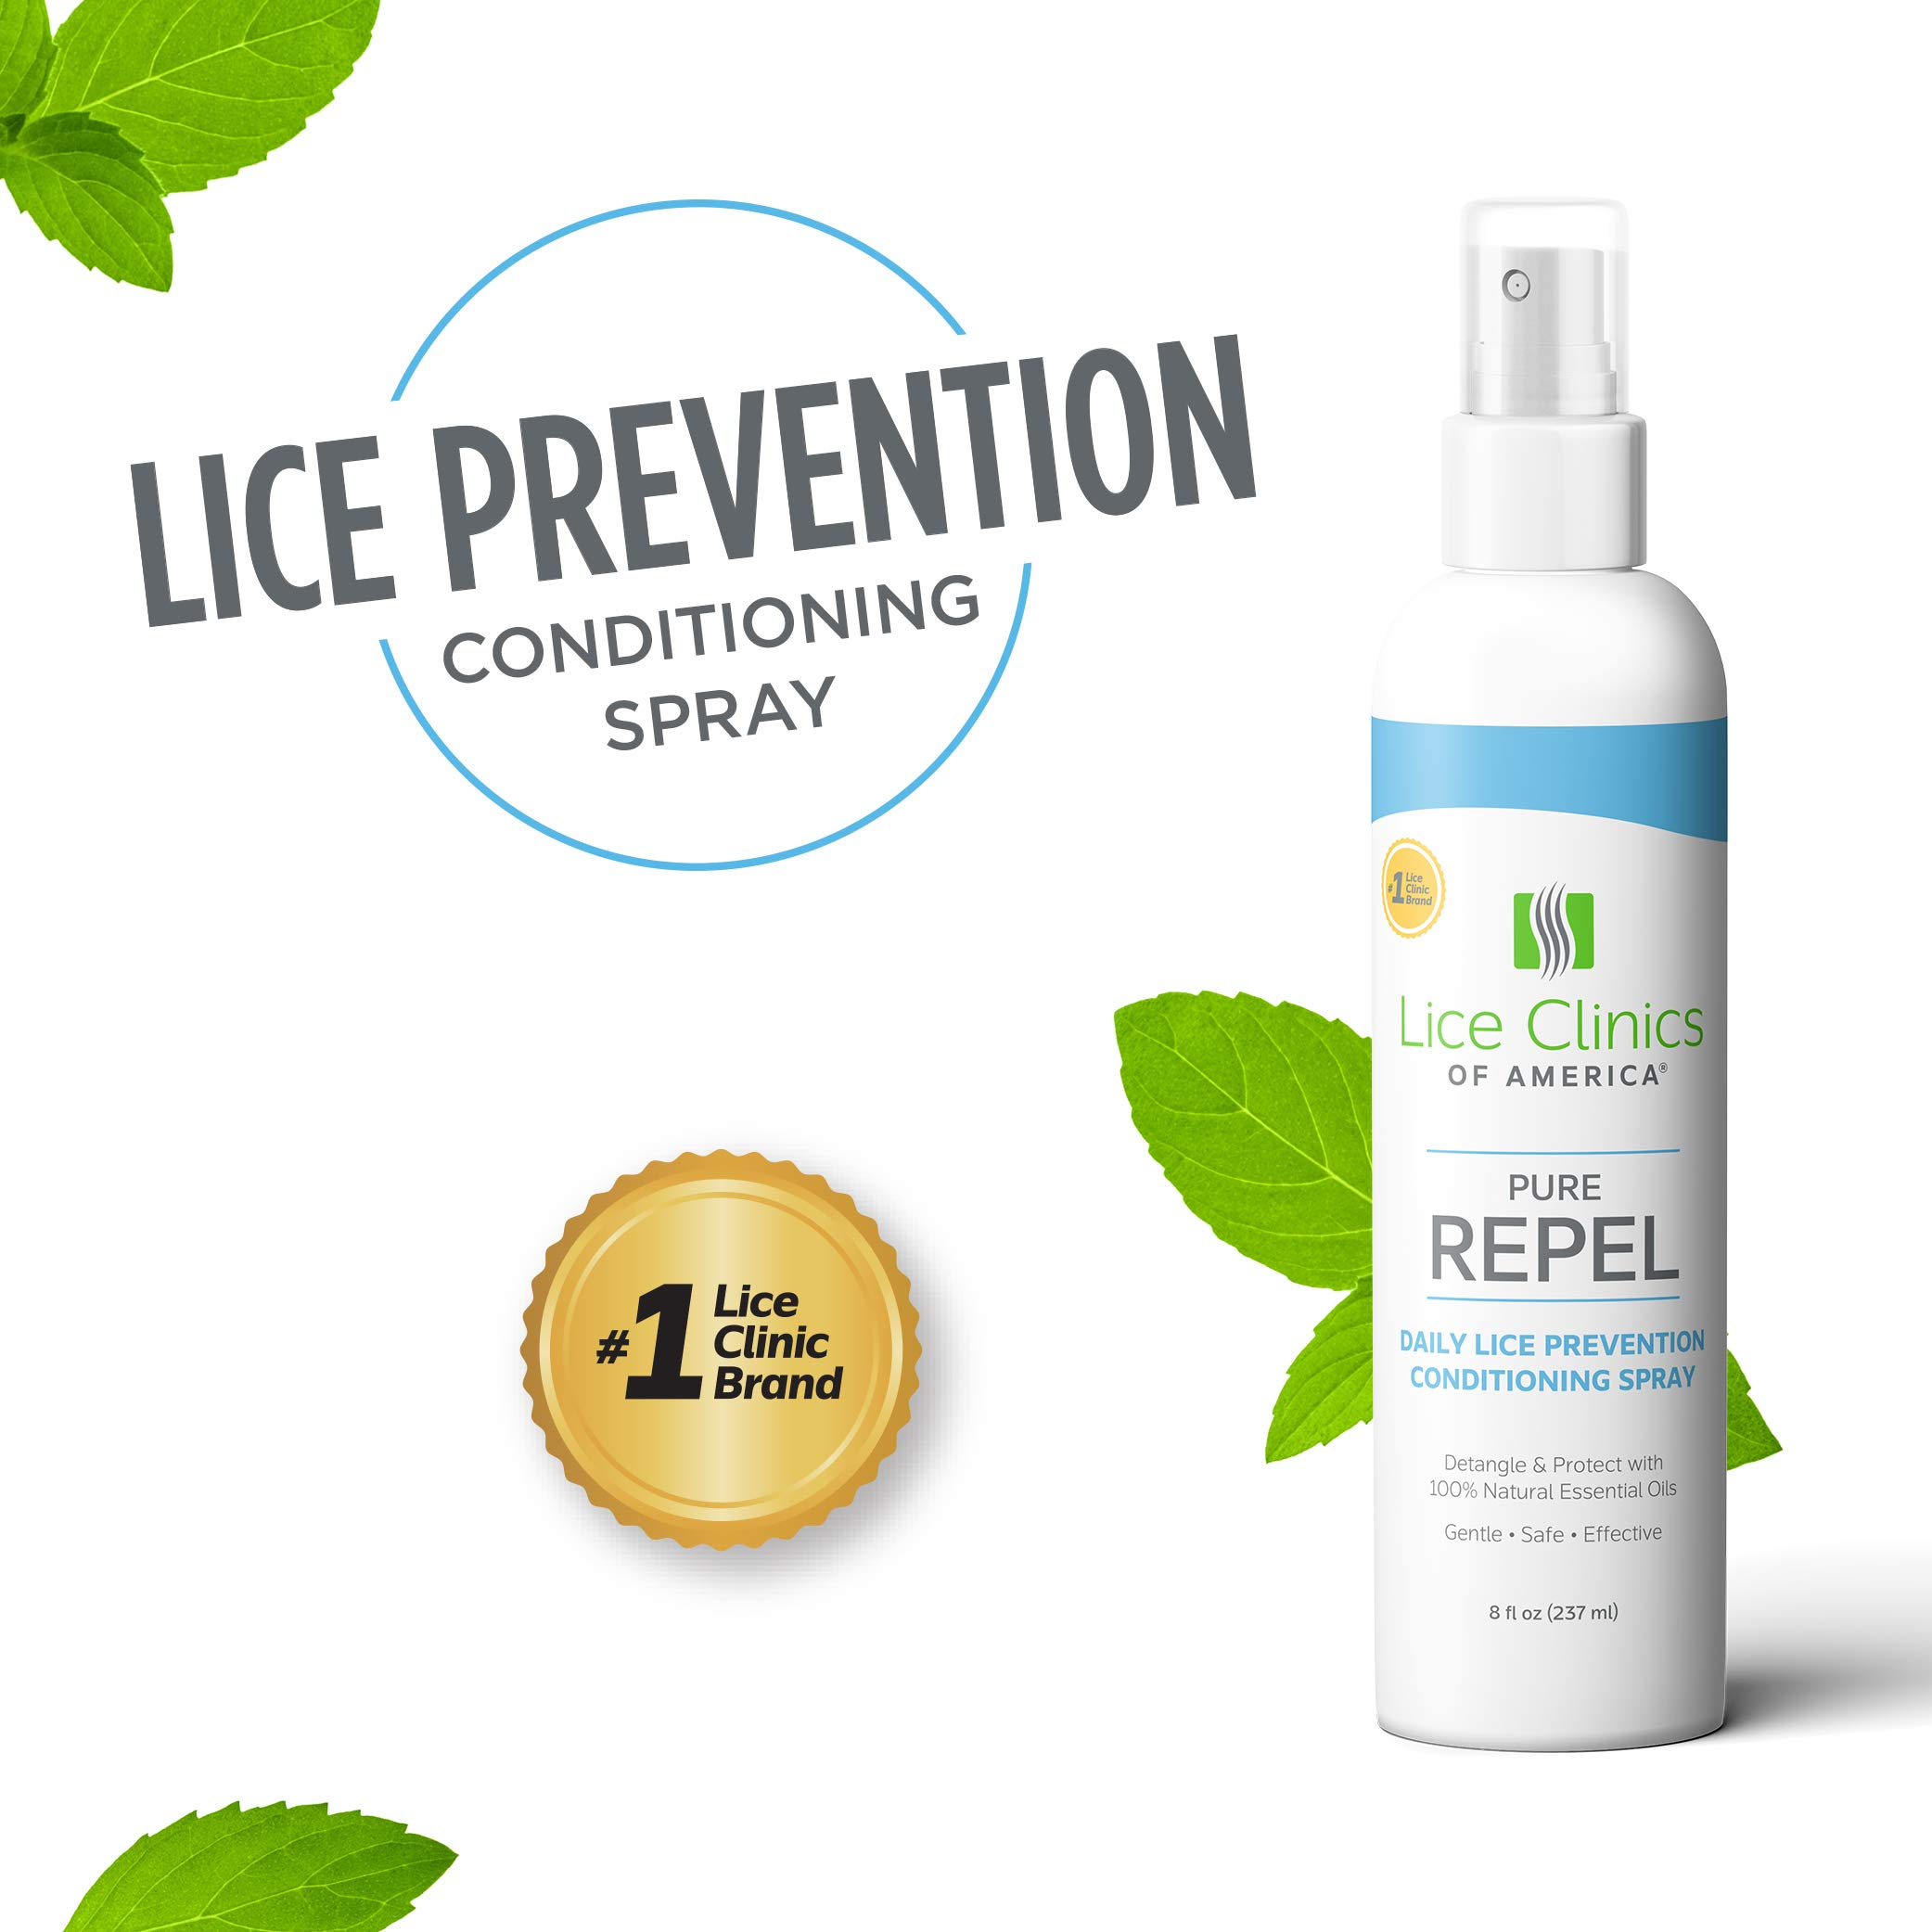 Lice Clinics of America Daily Lice Prevention Conditioning Spray - Repel Lice with 100% Natural Essential Oil by Lice Clinics of America